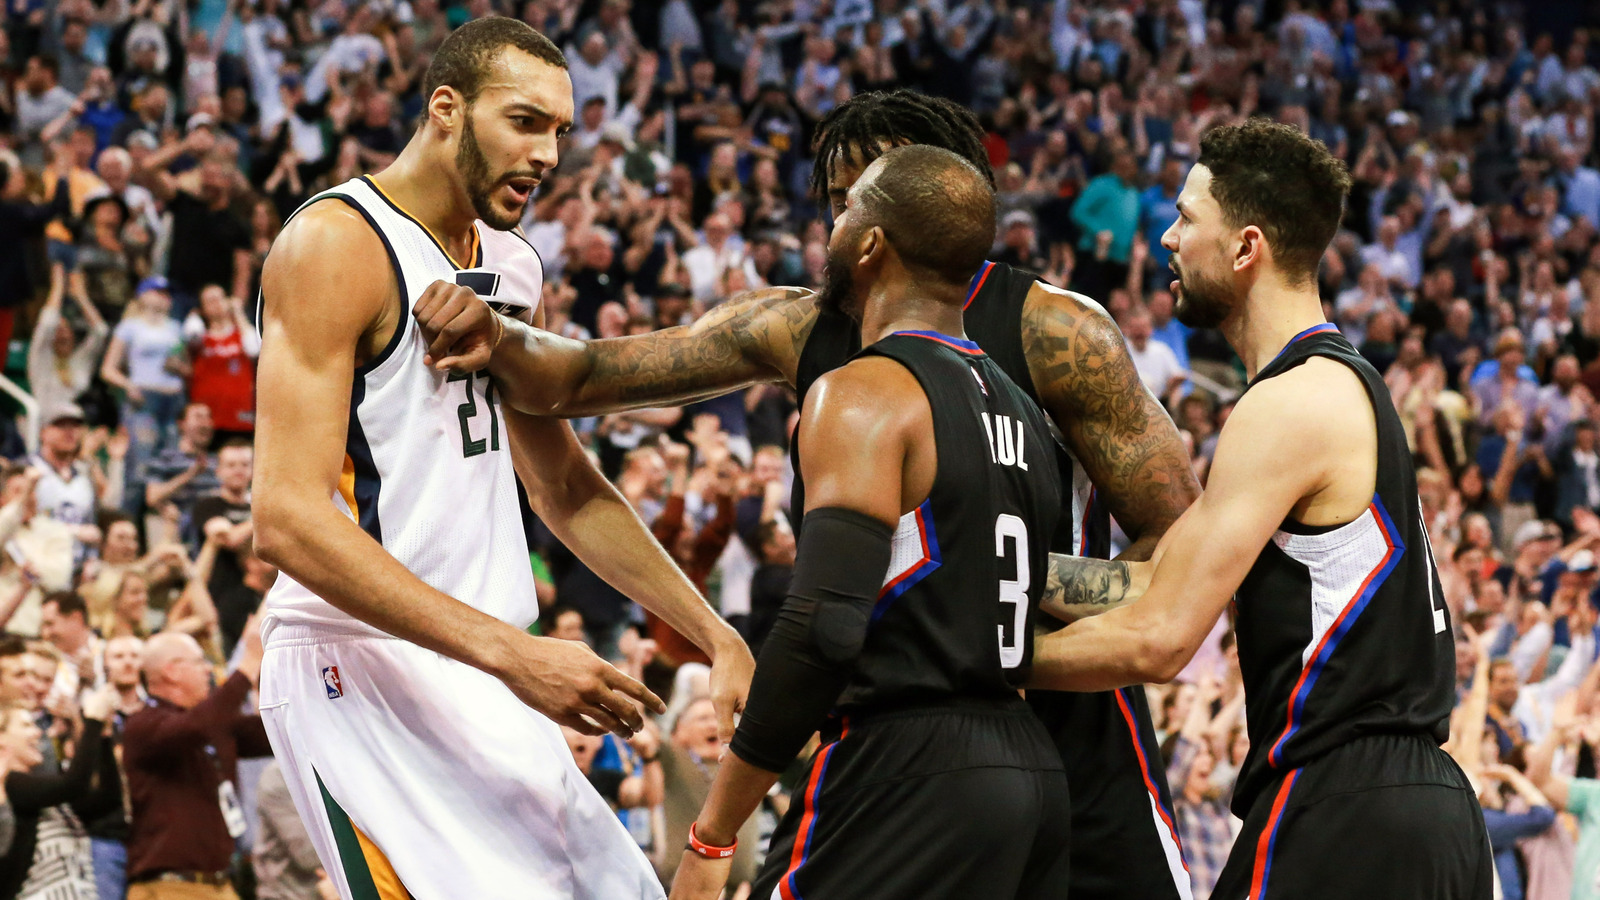 La clippers the impact of blake griffins surgery on the team foxsports com - The Utah Jazz And Los Angeles Clippers Don T Seem To Particularly Like Each Other Chris Nicoll Usa Today Sports